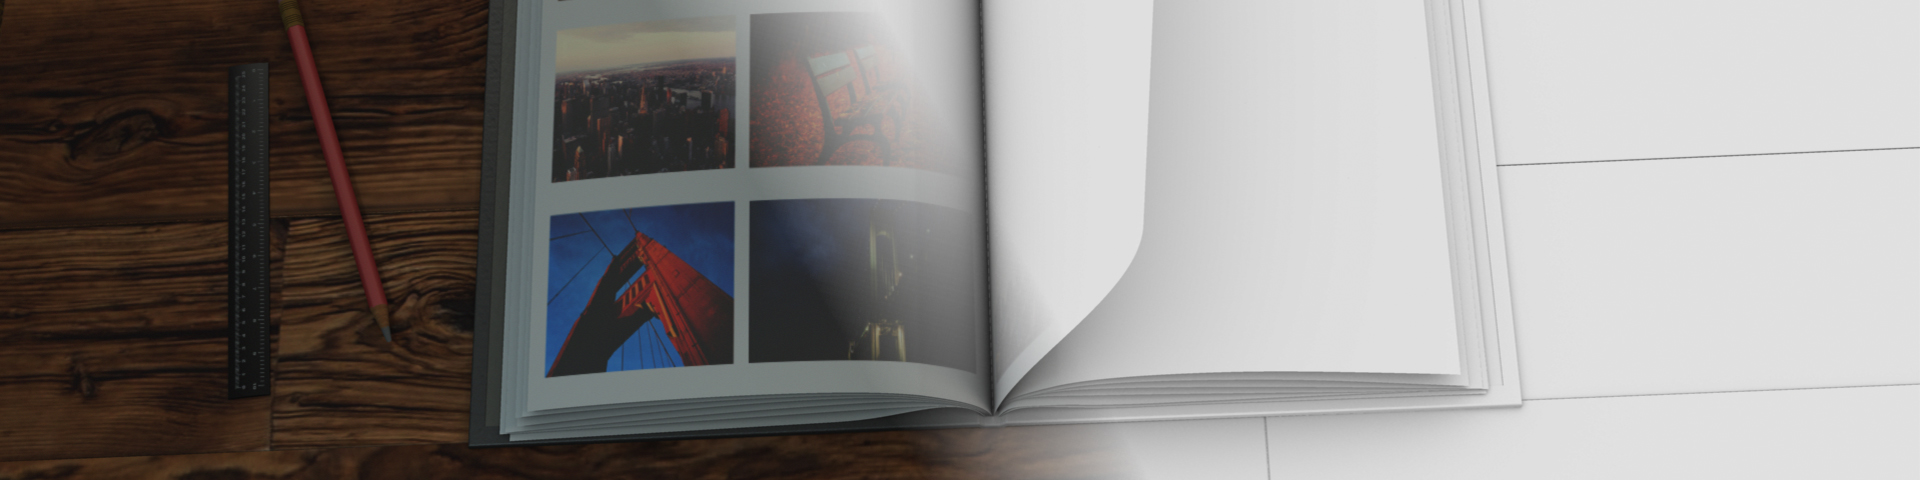 Side Projects: Compositing a CG Photo Book